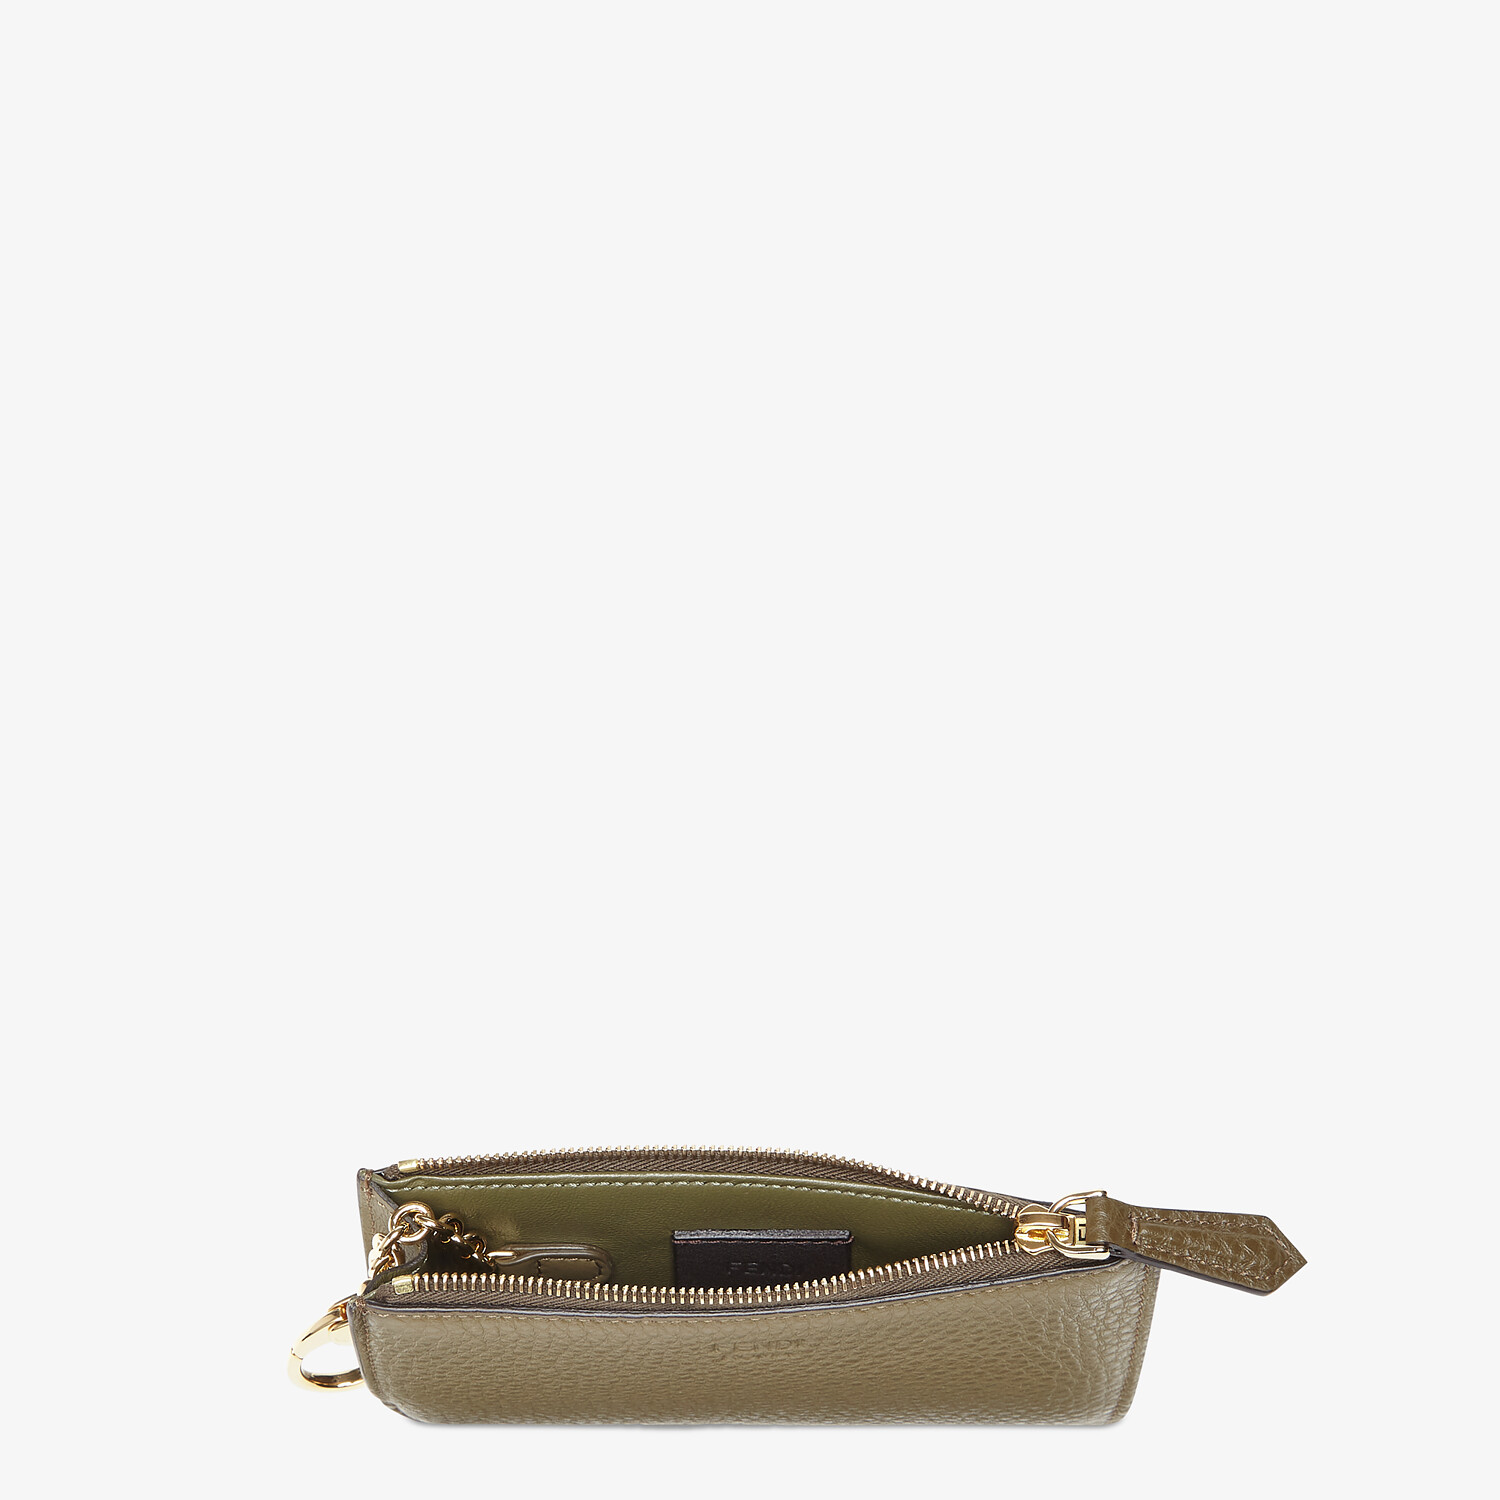 FENDI KEY CASE POUCH - Brown leather pouch - view 3 detail